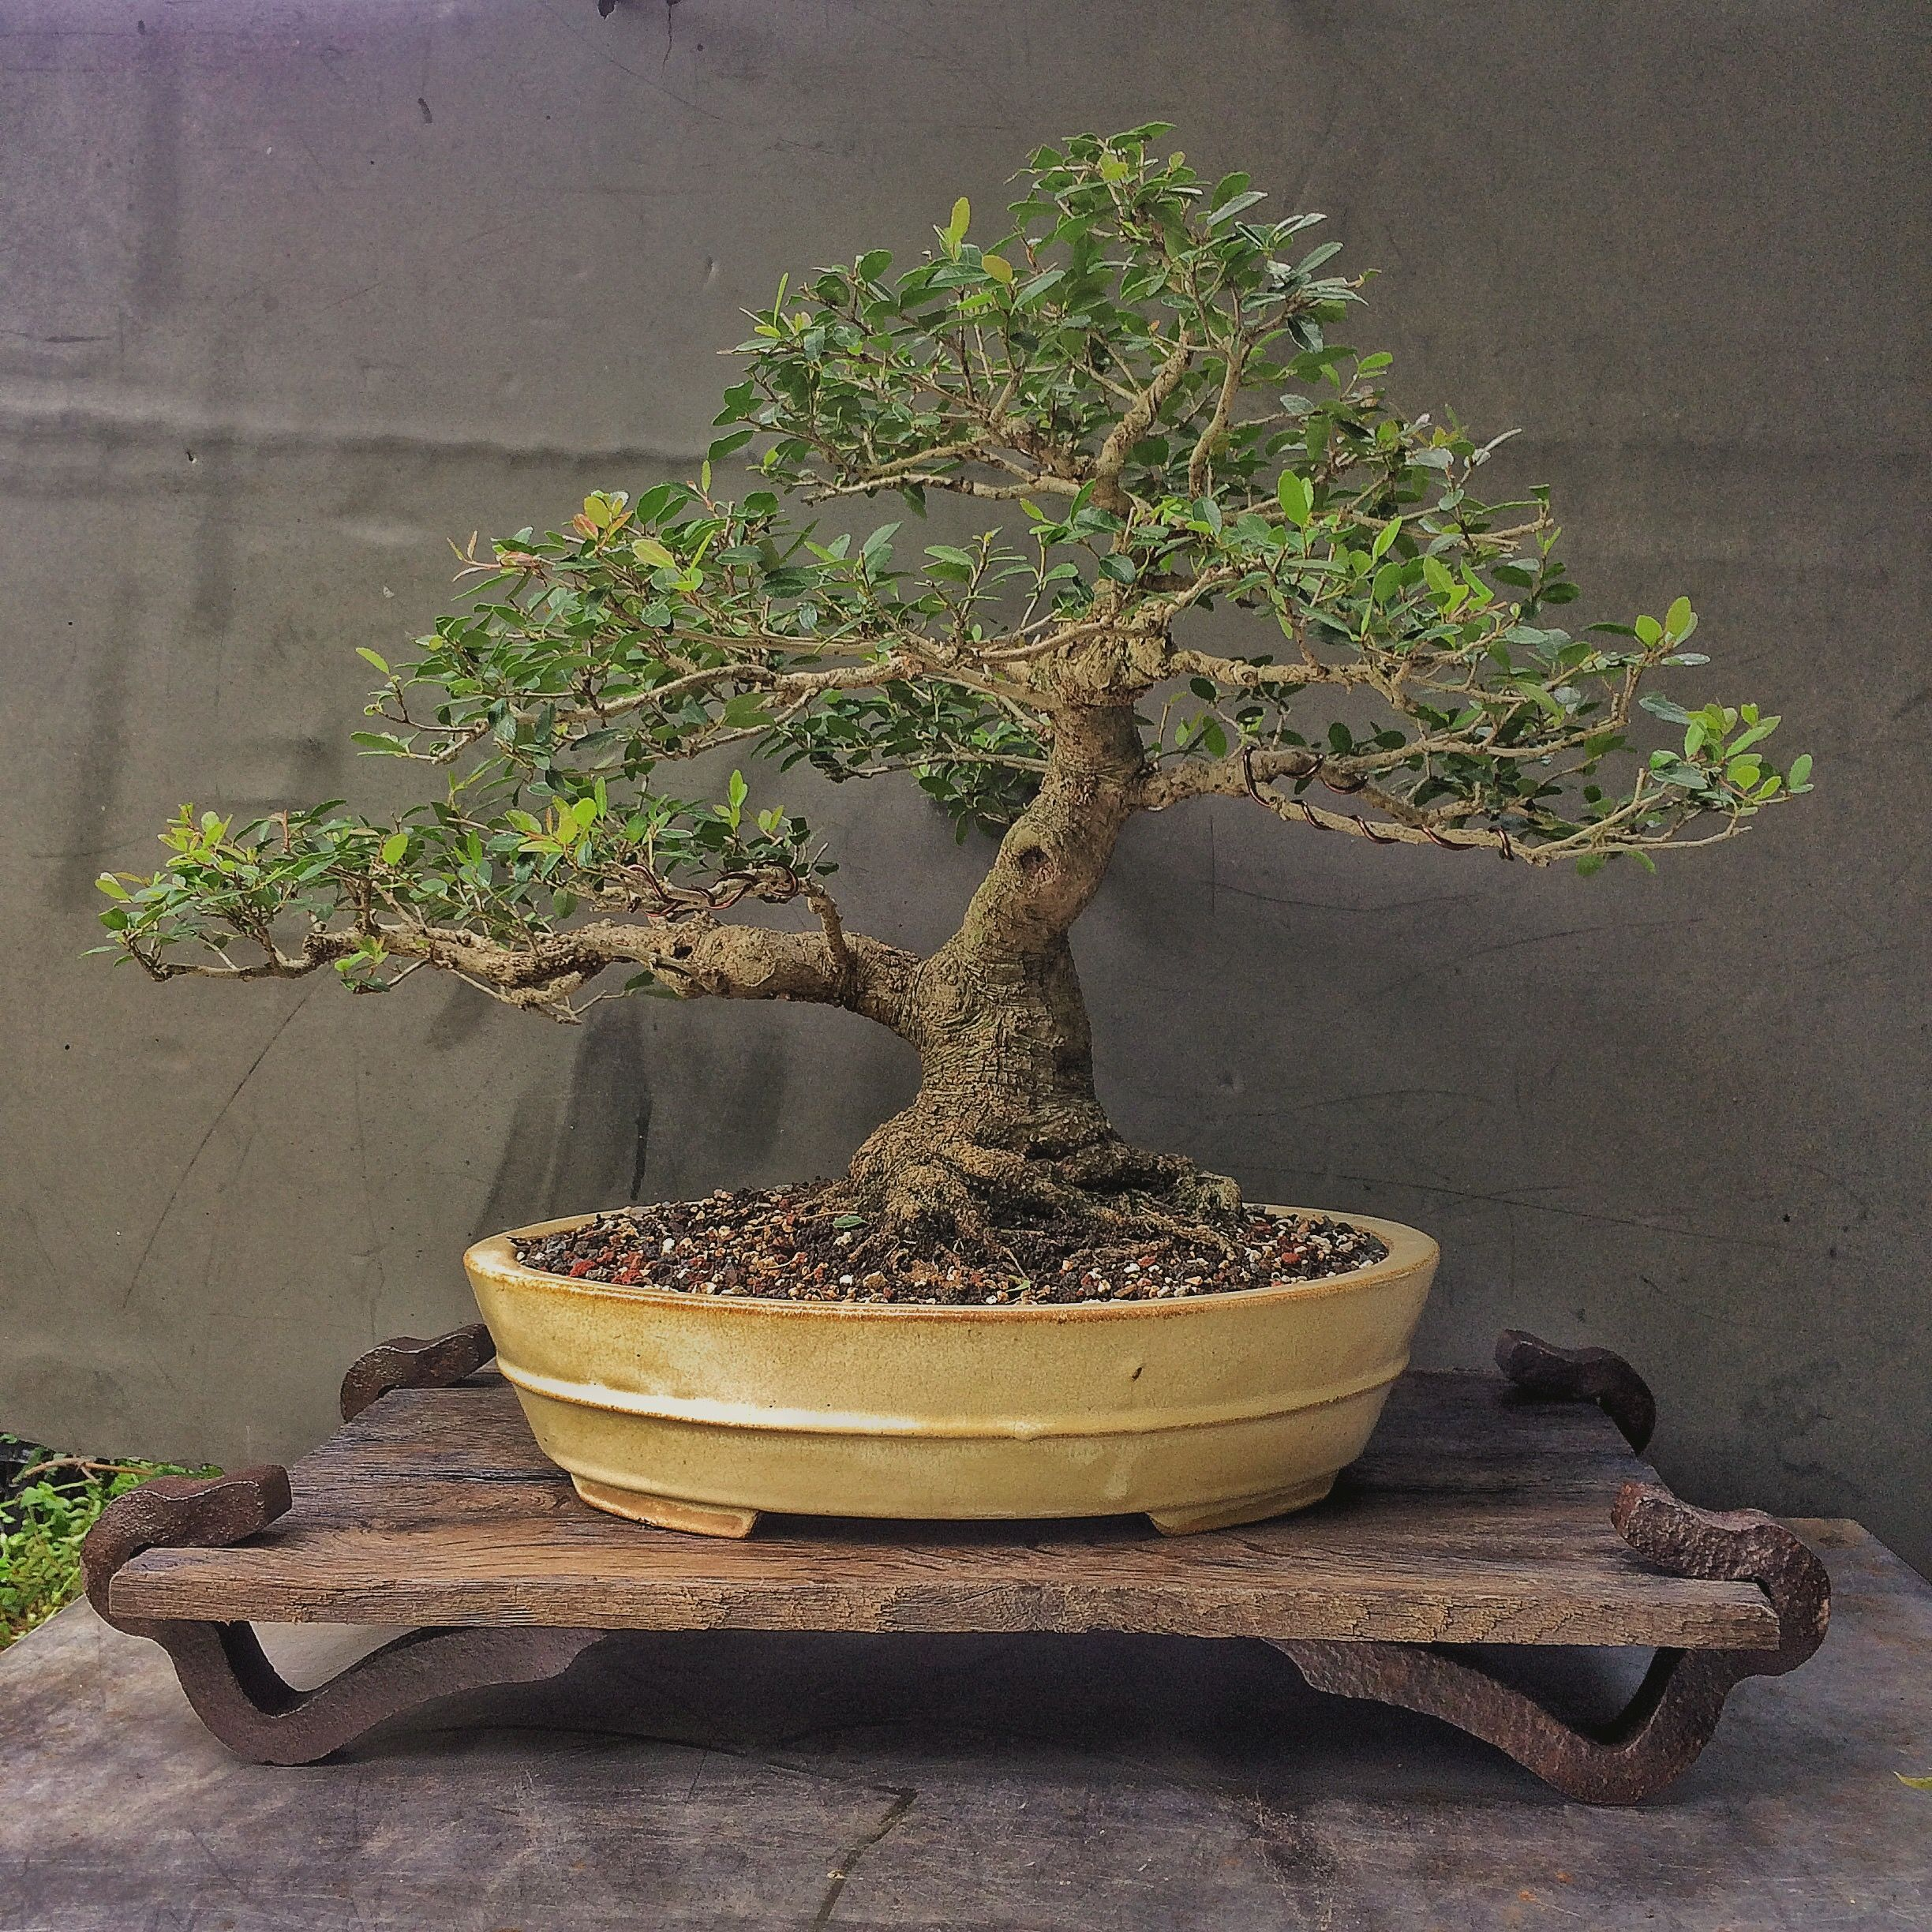 Building a display stand for a bonsai | Adam's Art and Bonsai Blog